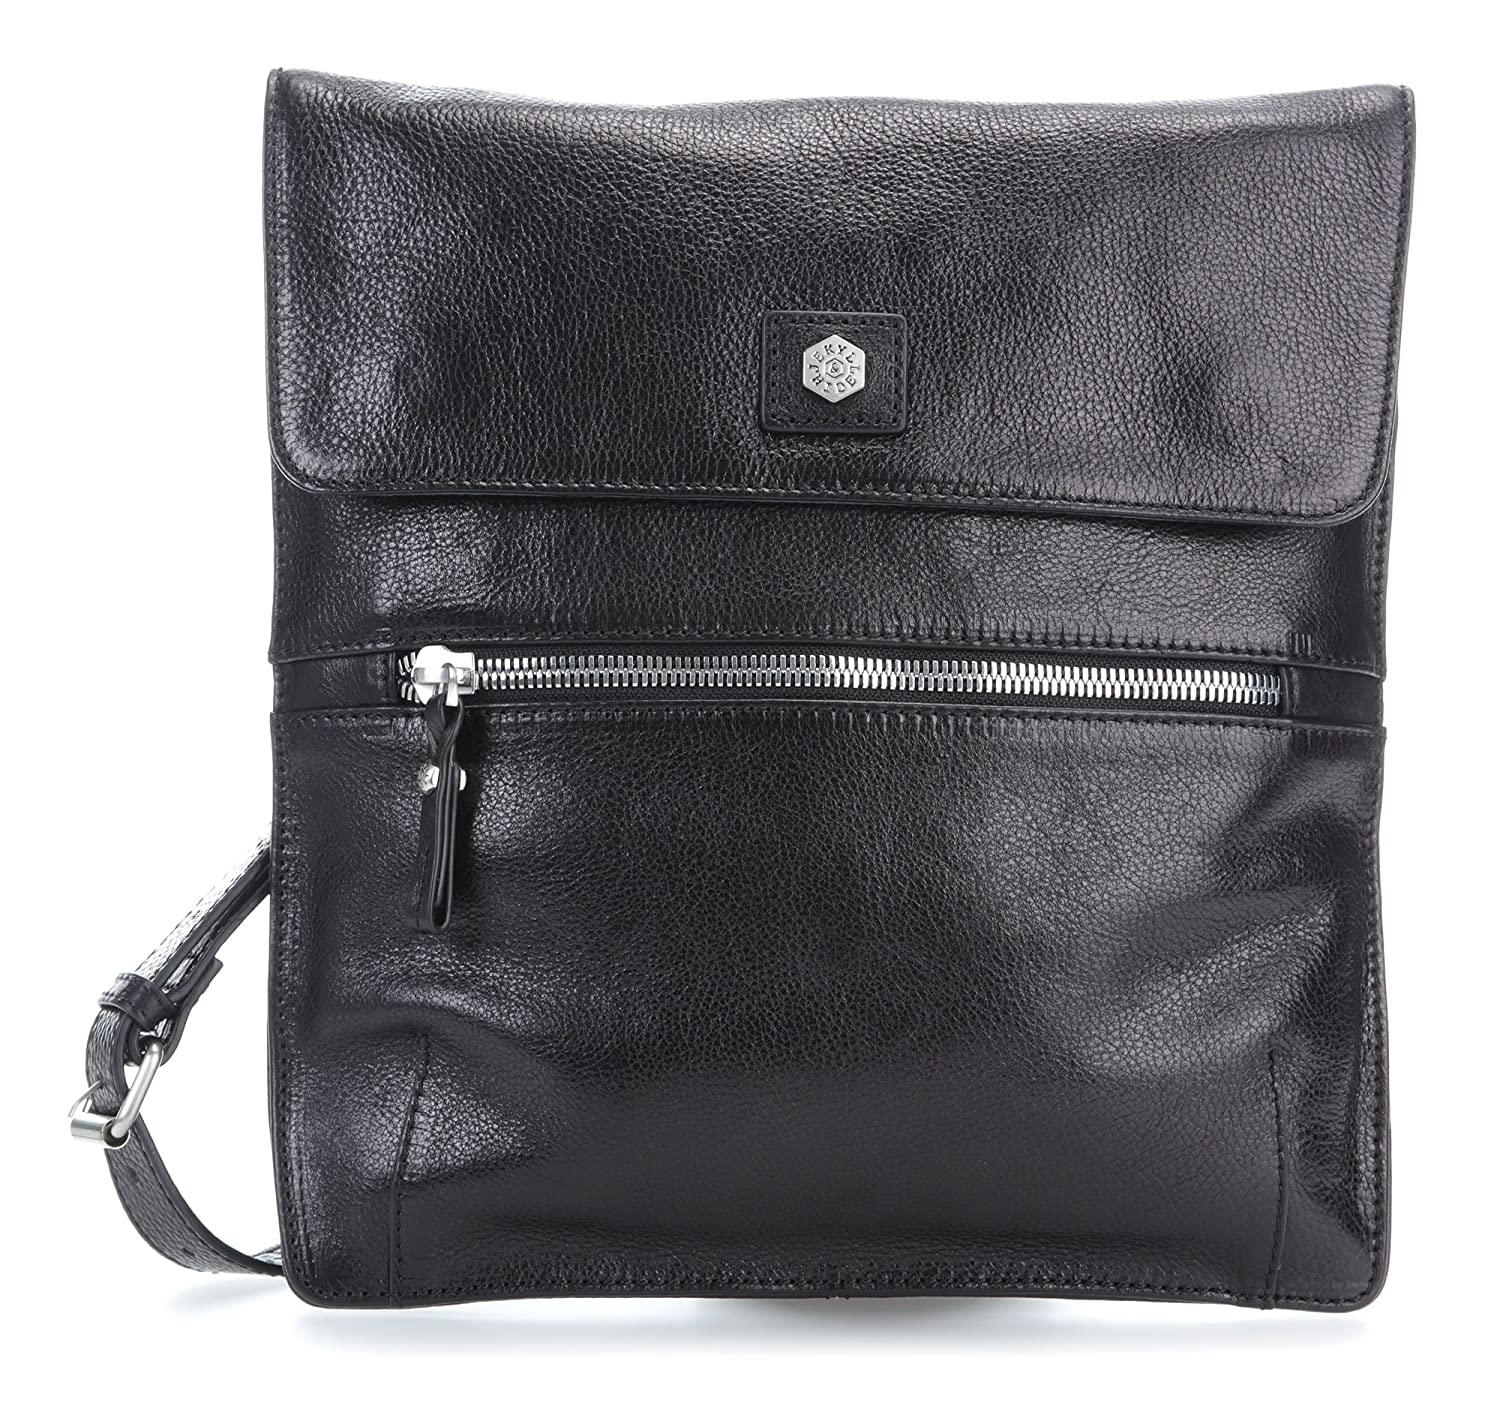 Black 31 cm Jekyll and Hide Berlin Messenger Bag